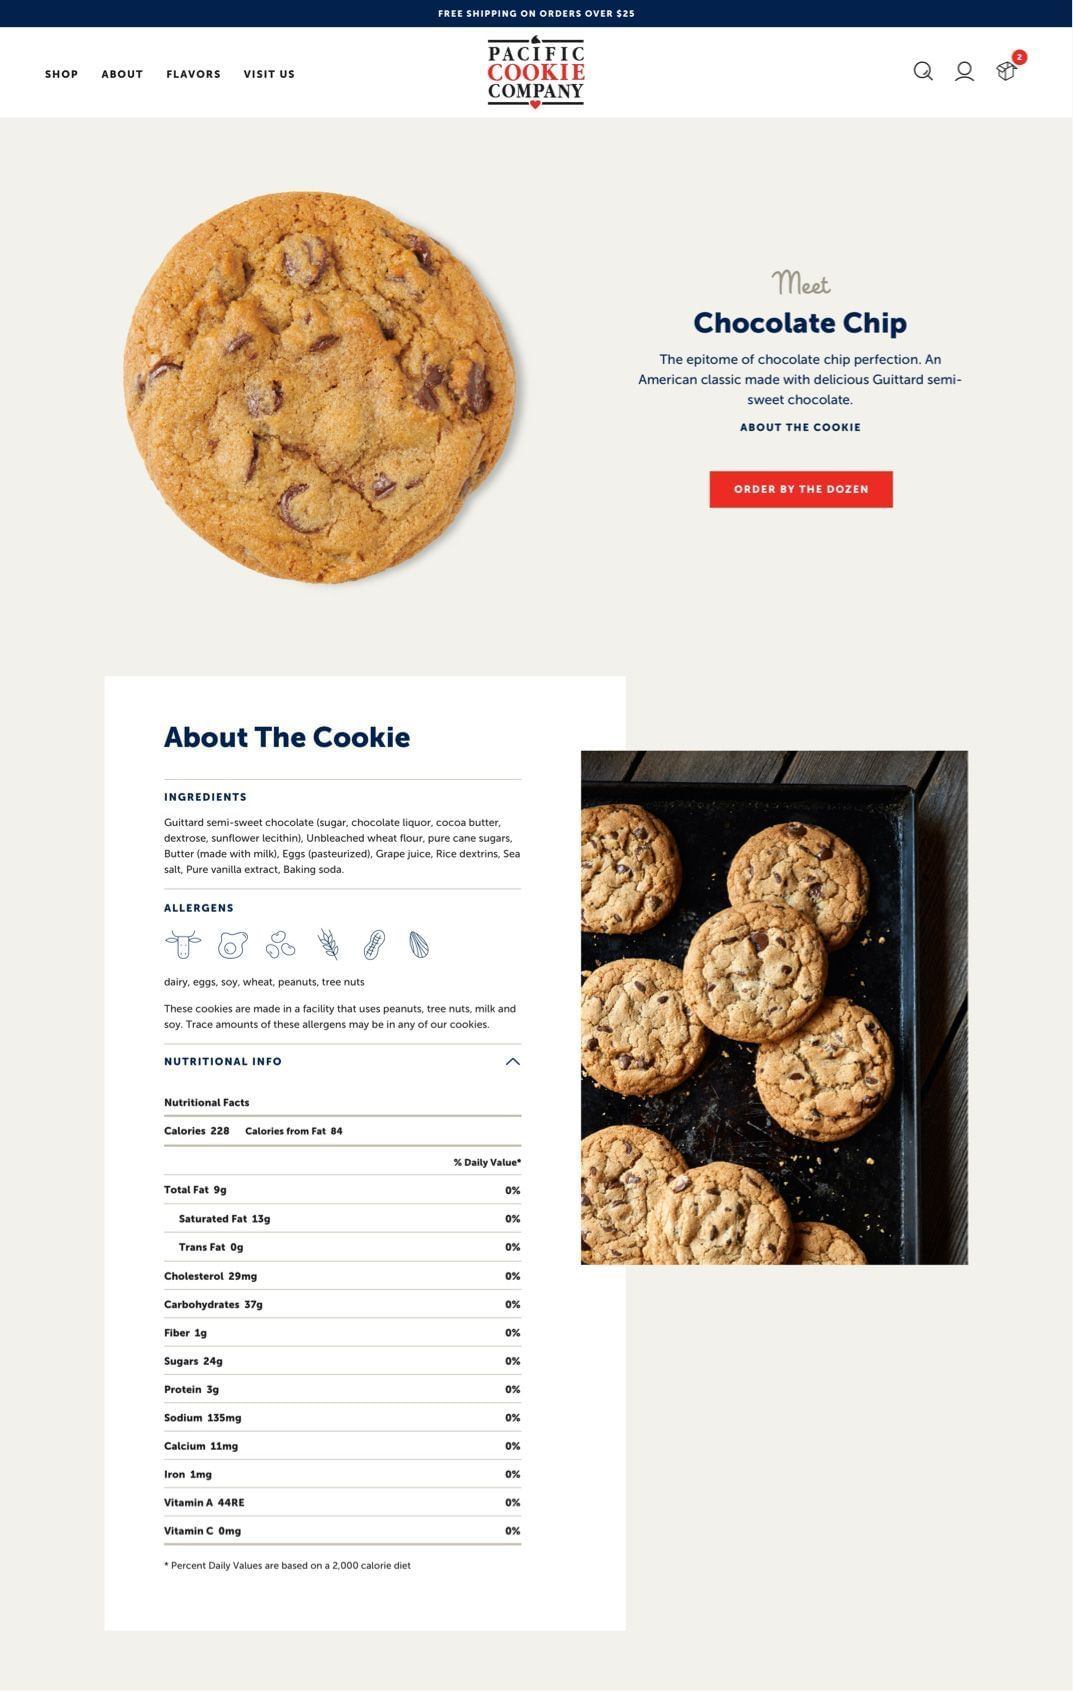 Pacific Cookie Company - Cookie Profiles